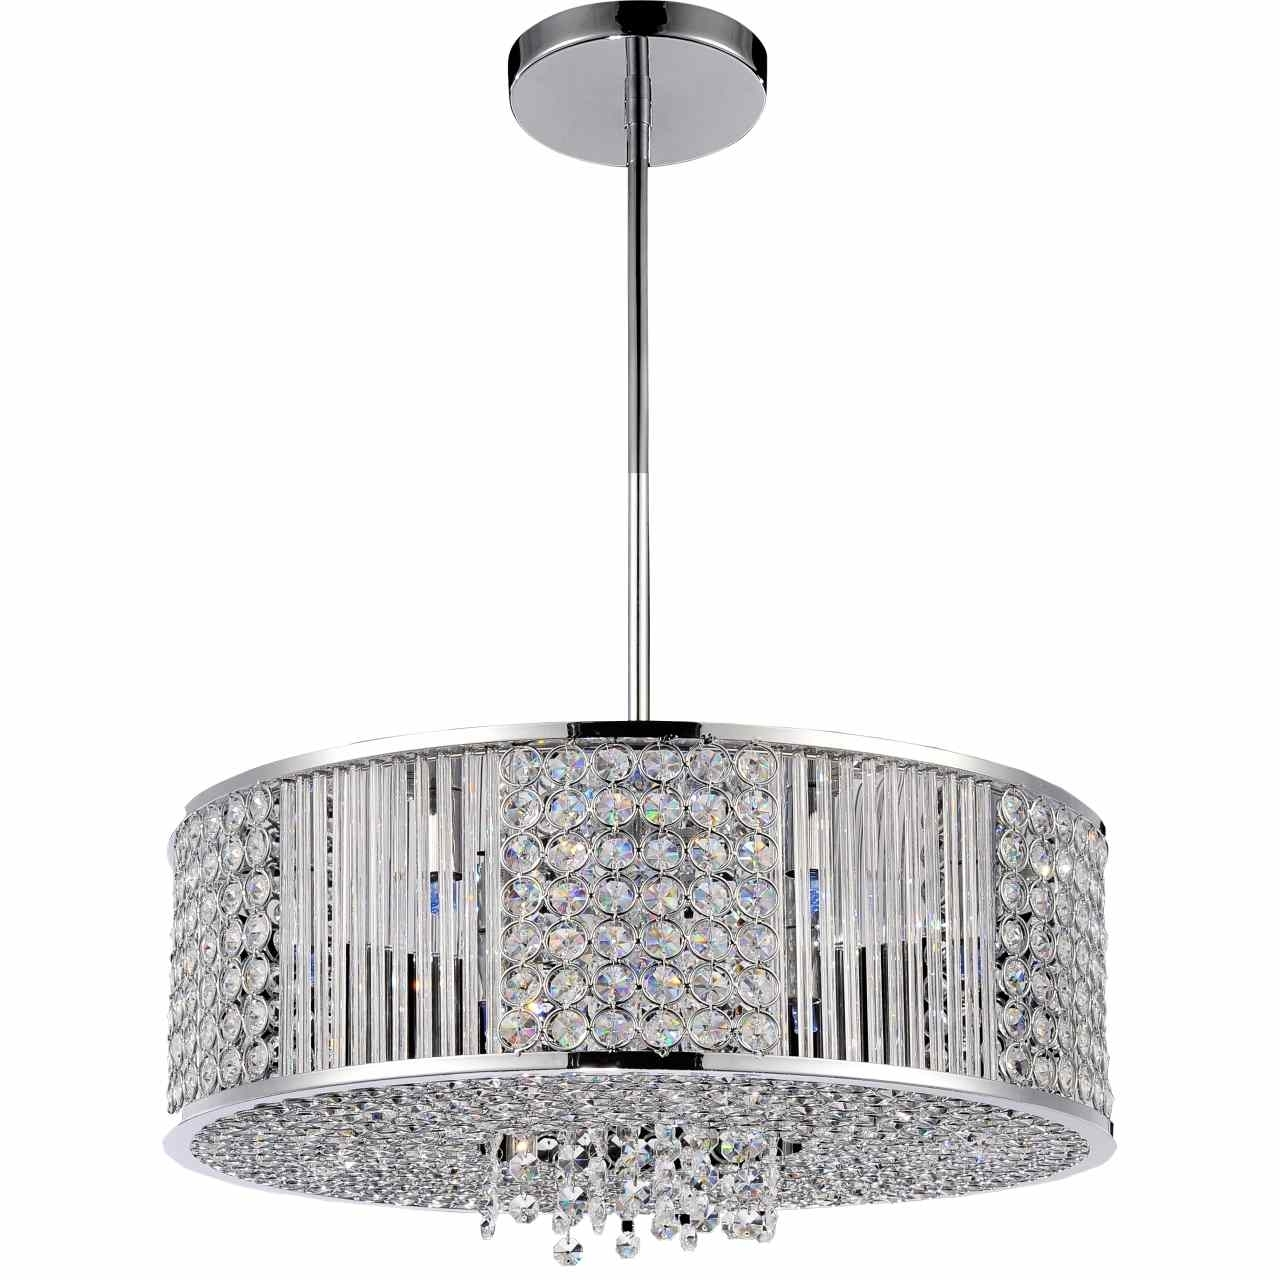 Newest Brizzo Lighting Stores (View 13 of 15)